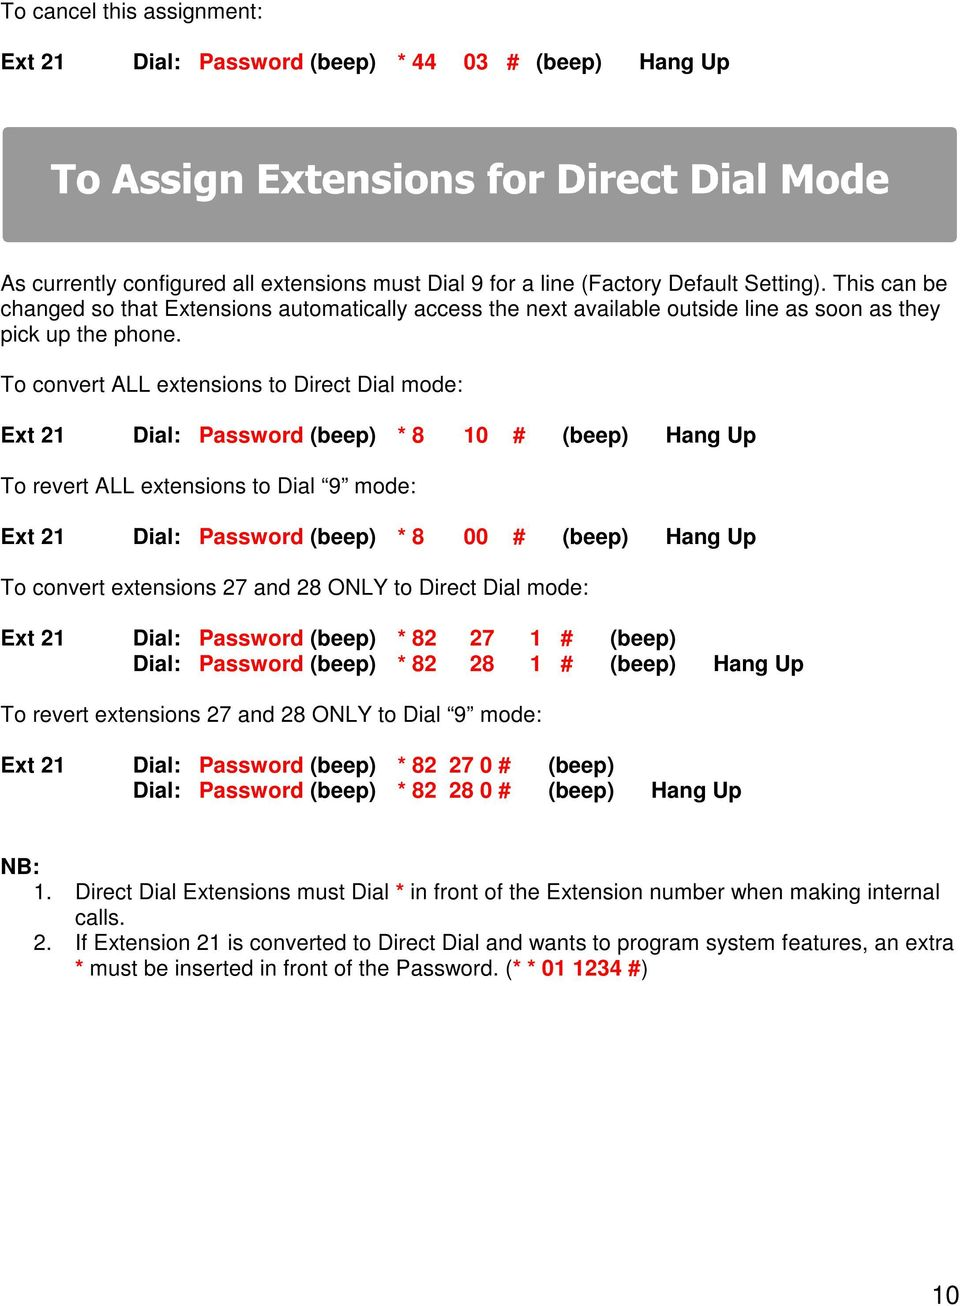 To convert ALL extensions to Direct Dial mode: Ext 21 Dial: Password (beep) * 8 10 # (beep) Hang Up To revert ALL extensions to Dial 9 mode: Ext 21 Dial: Password (beep) * 8 00 # (beep) Hang Up To